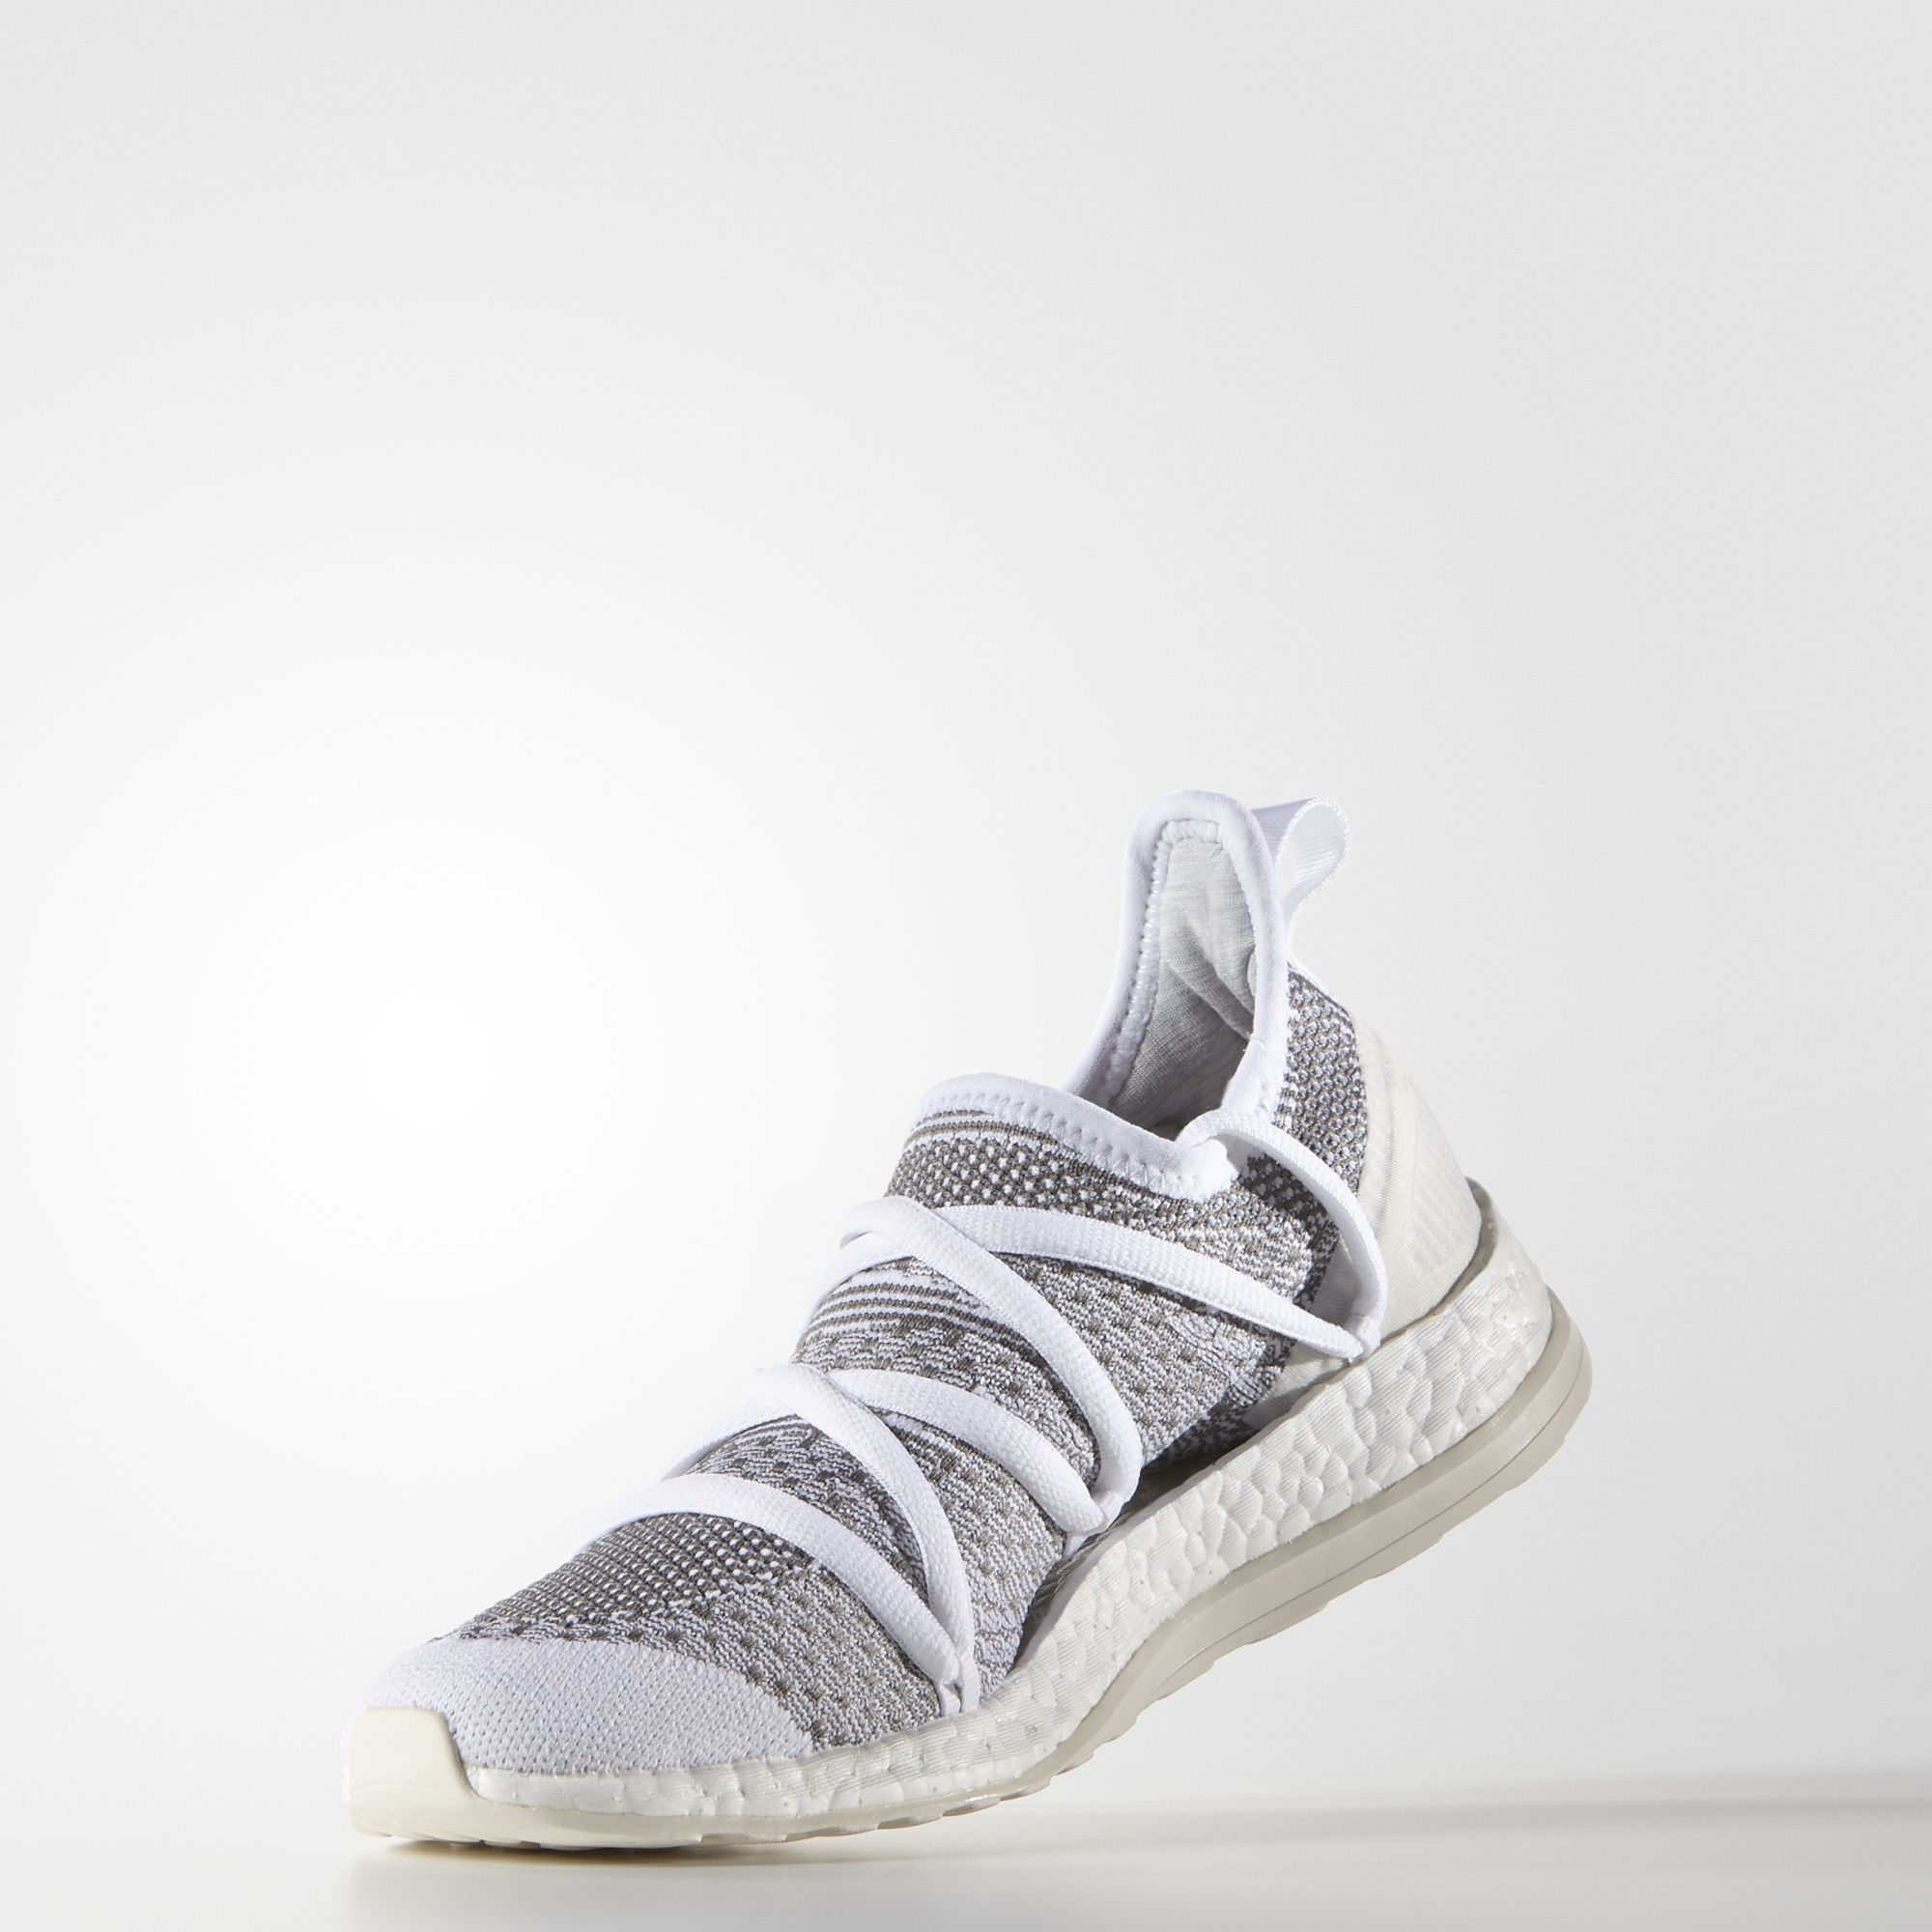 adidas nike shop online uk adidas ultra boost womens running shoes  aw15